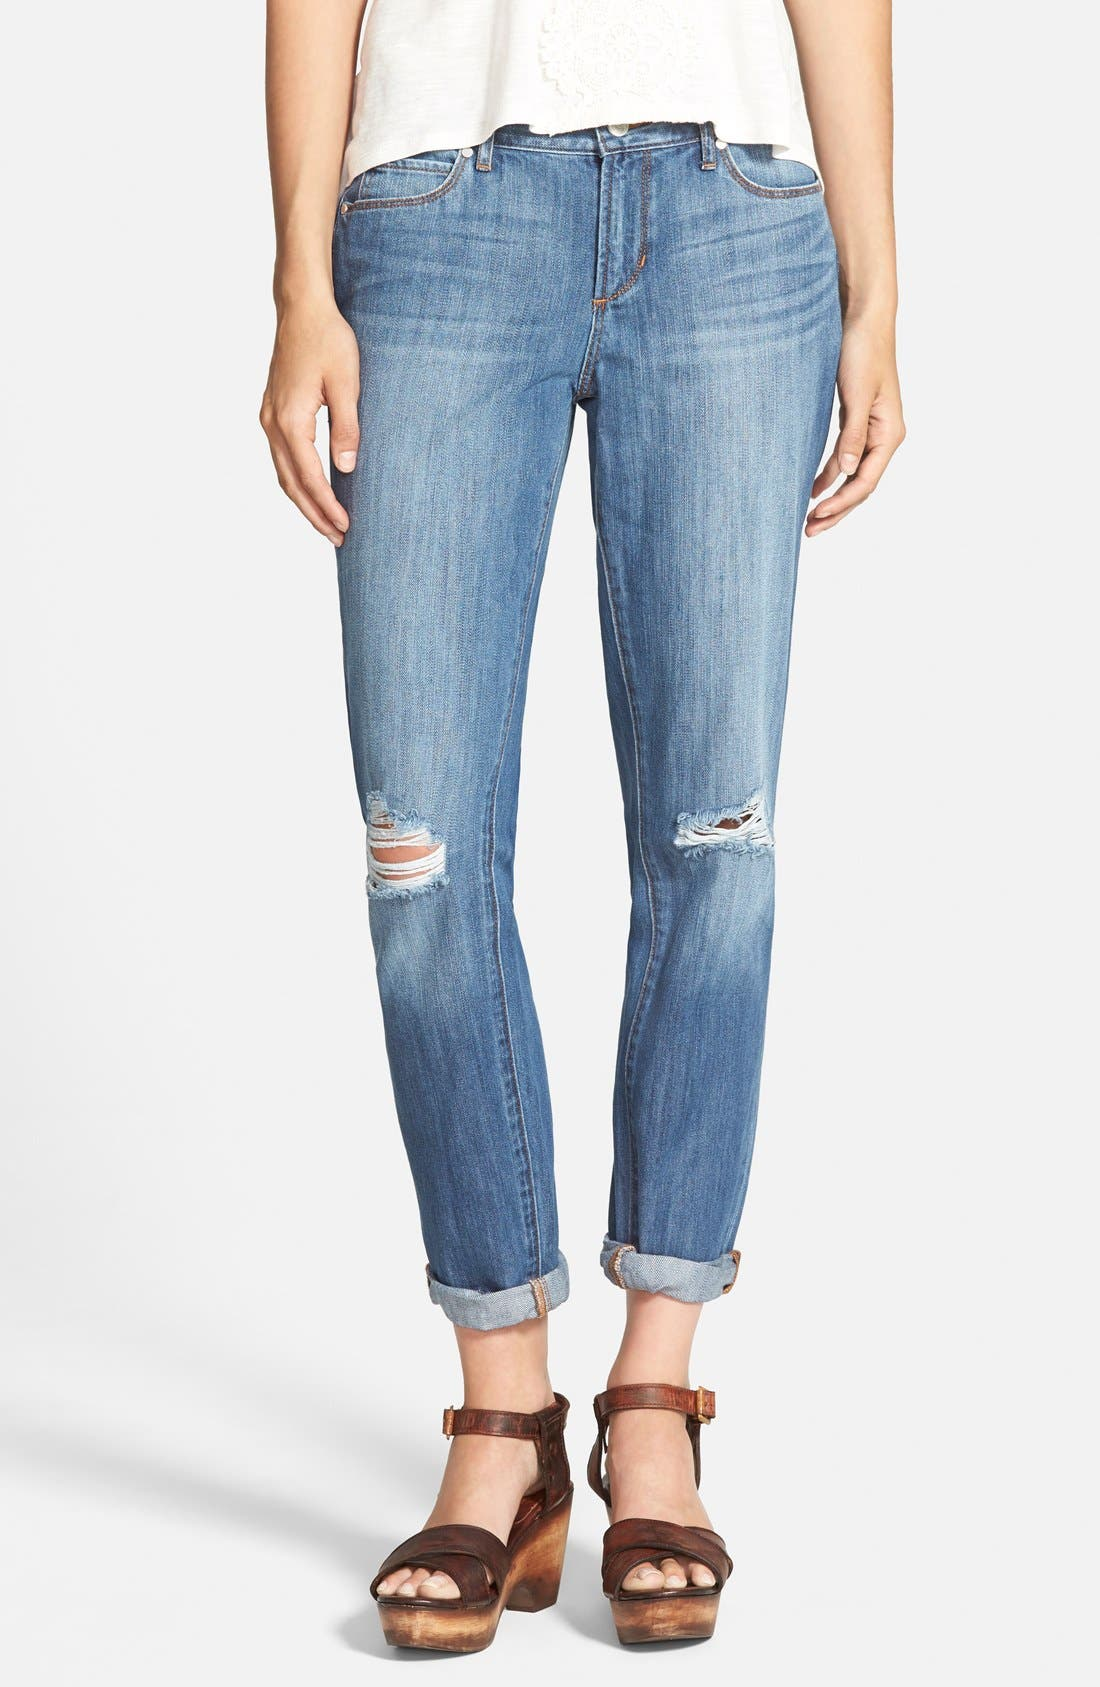 Main Image - Articles of Society 'Cindy' Boyfriend Jeans (Medium Wash)